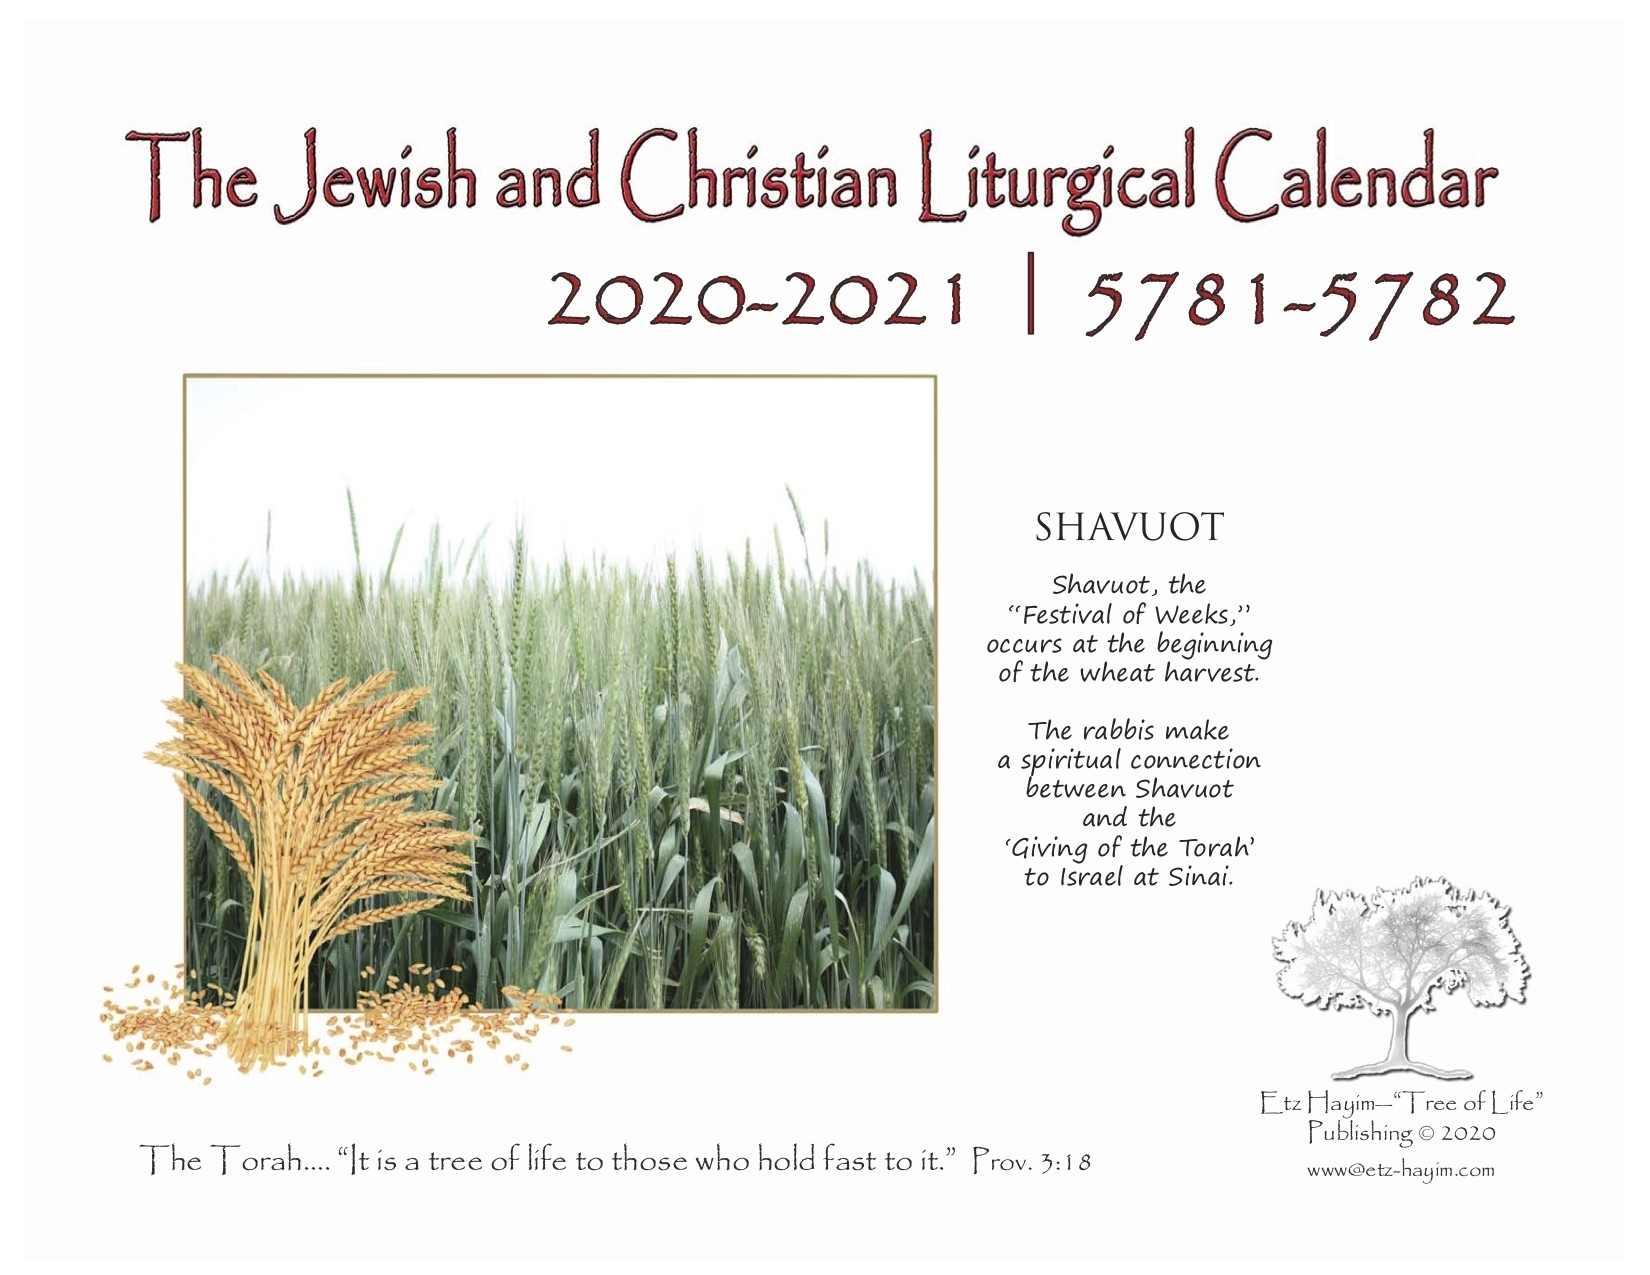 Ahc Liturgical Calendar For 2020-2021 – Association Of